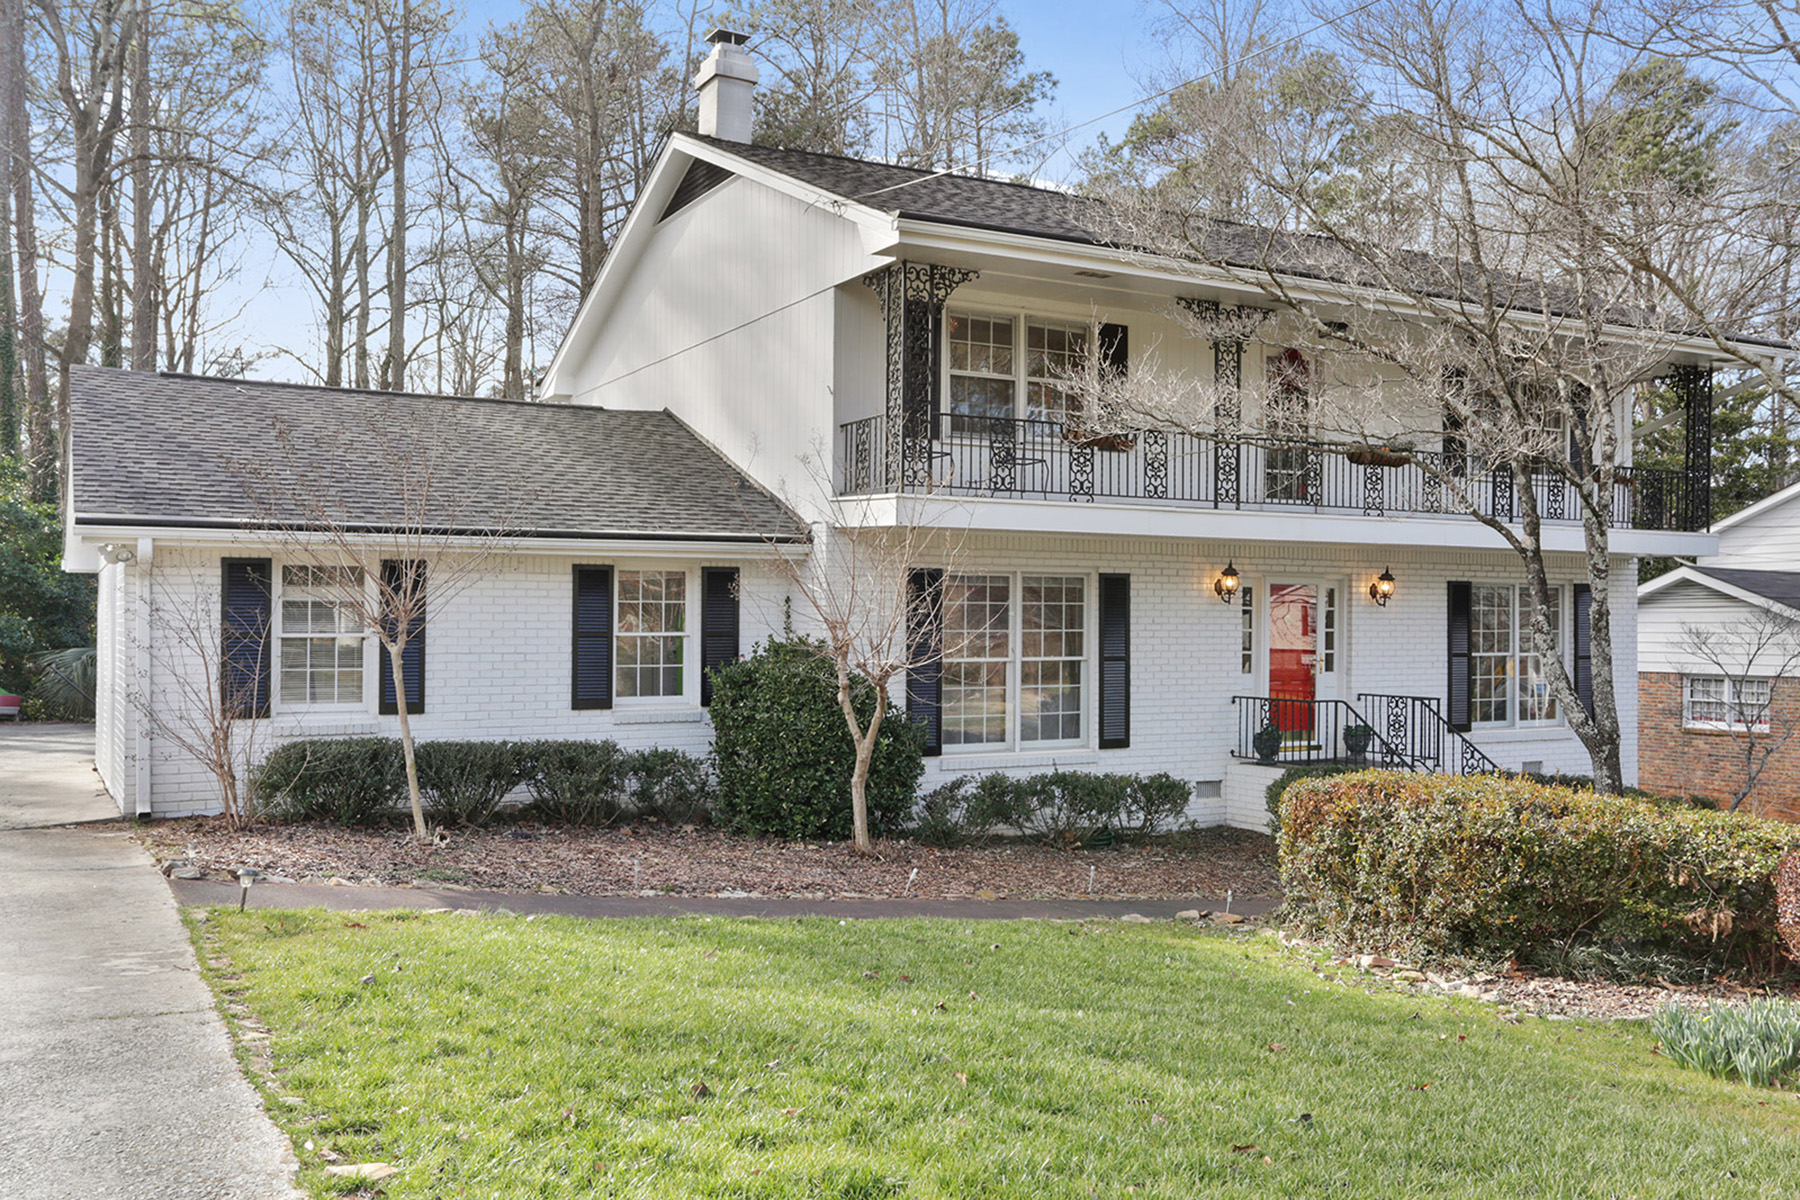 Частный односемейный дом для того Продажа на Wonderfully Renovated Home In Great Dunwoody Location 5136 Mount Vernon Way Dunwoody, Georgia 30338 United States